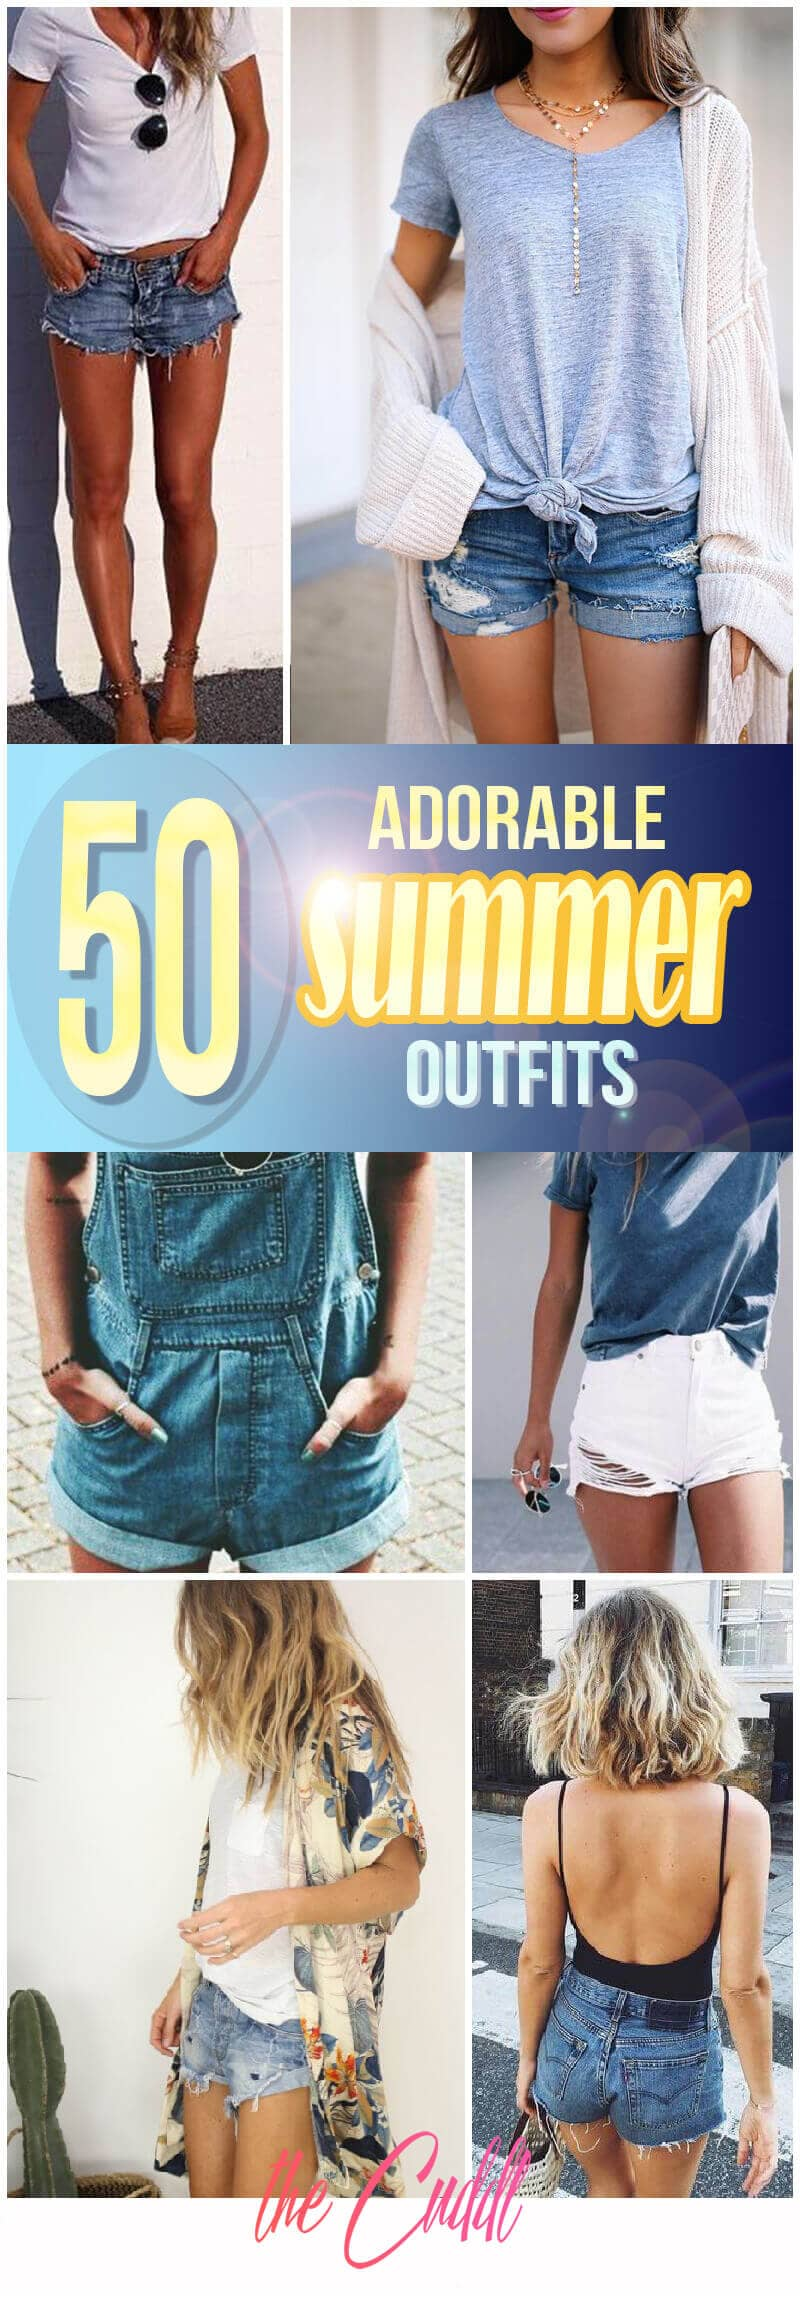 50 Adorable Summer Outfits